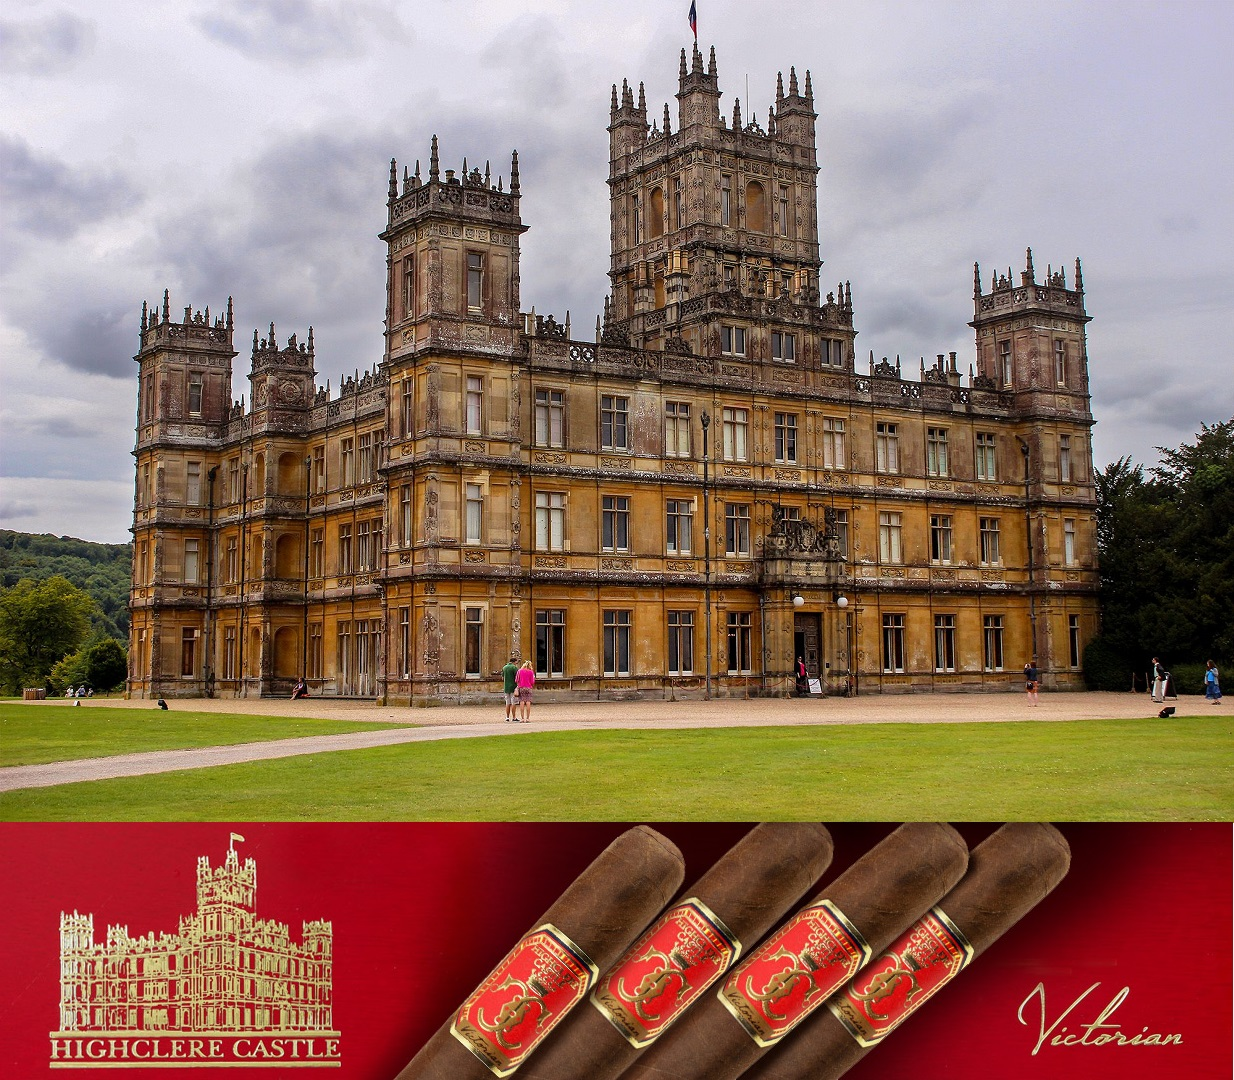 highclere-castle-victorian-category.jpg